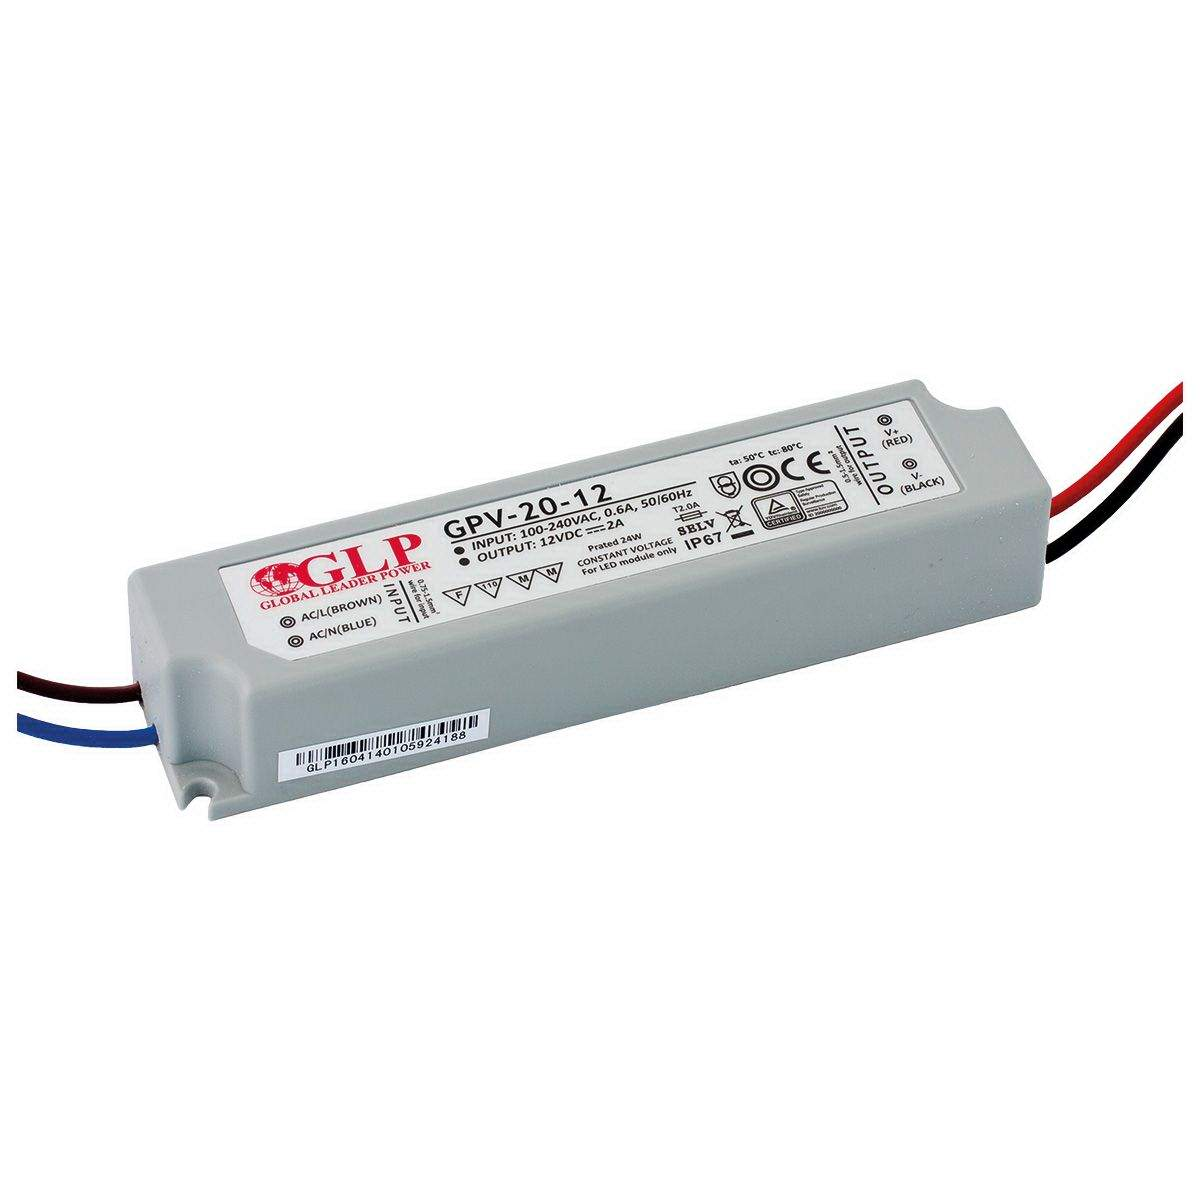 LED power supply unit LED power supply unit GLP POWER 12V DC GPV-20-12  20W  IP67